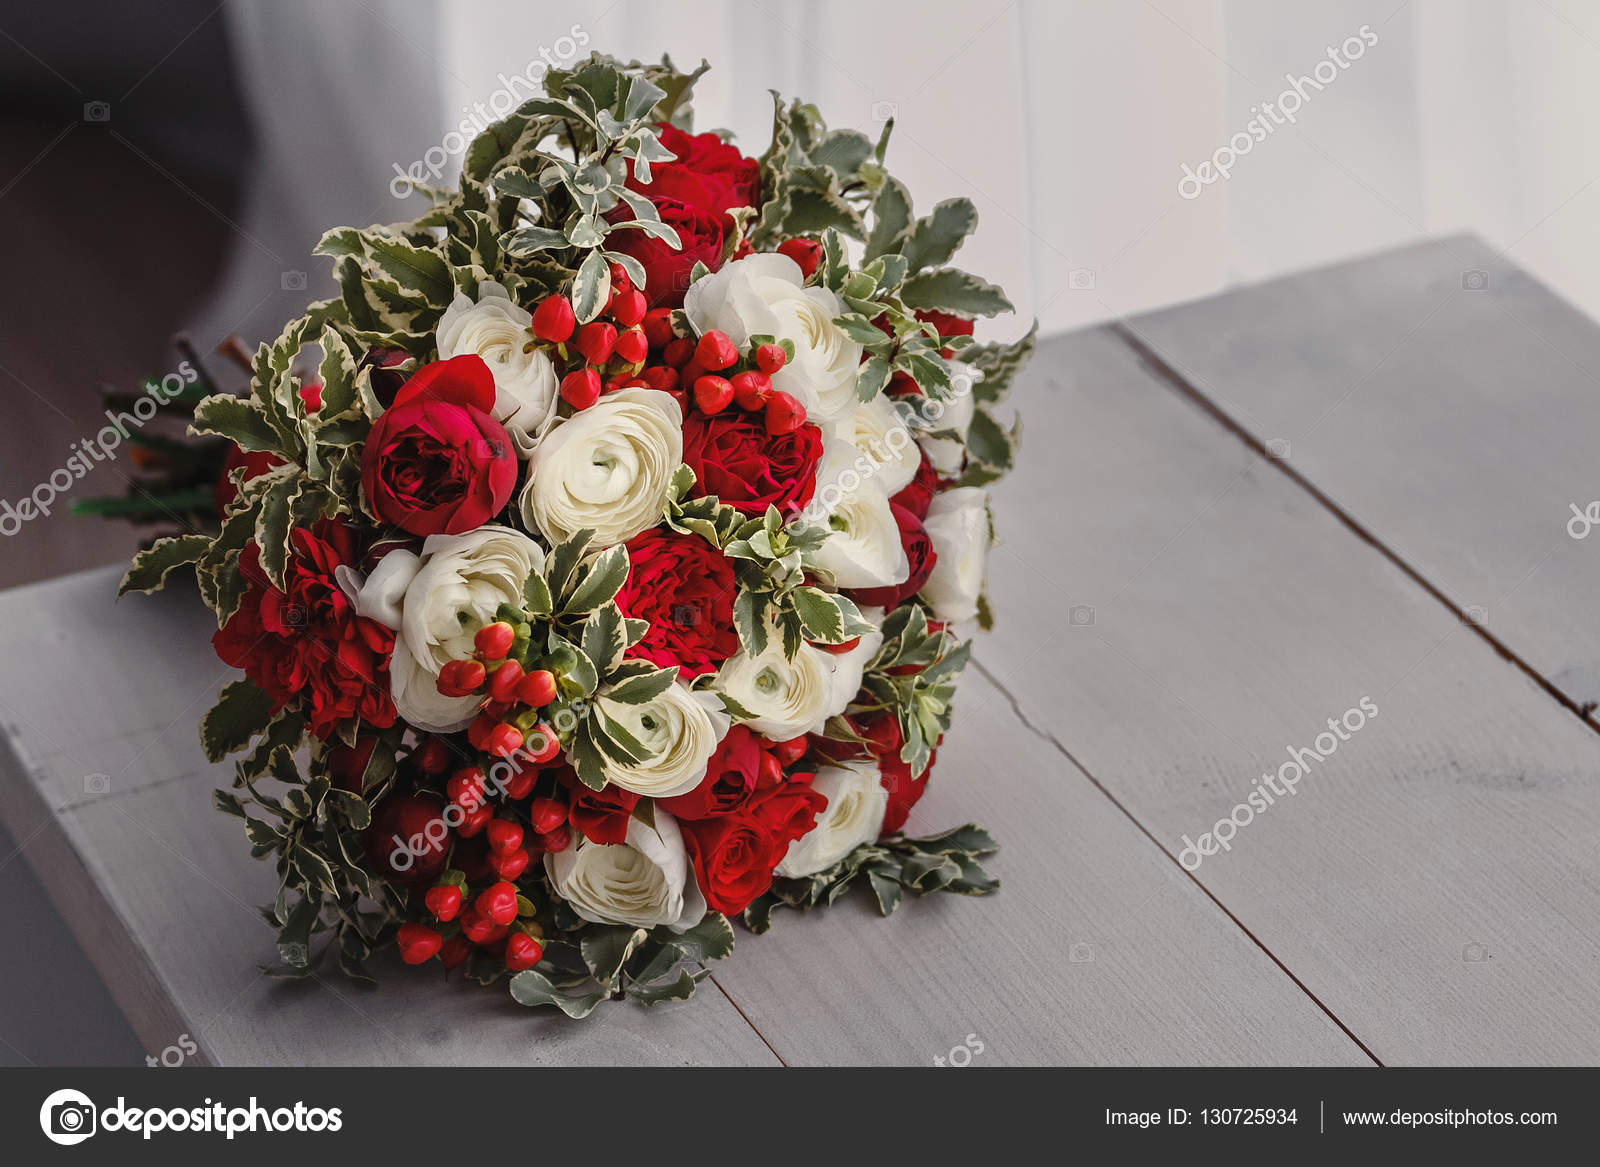 Red And White Autumn Wedding Bouquet With Berries On The Bench